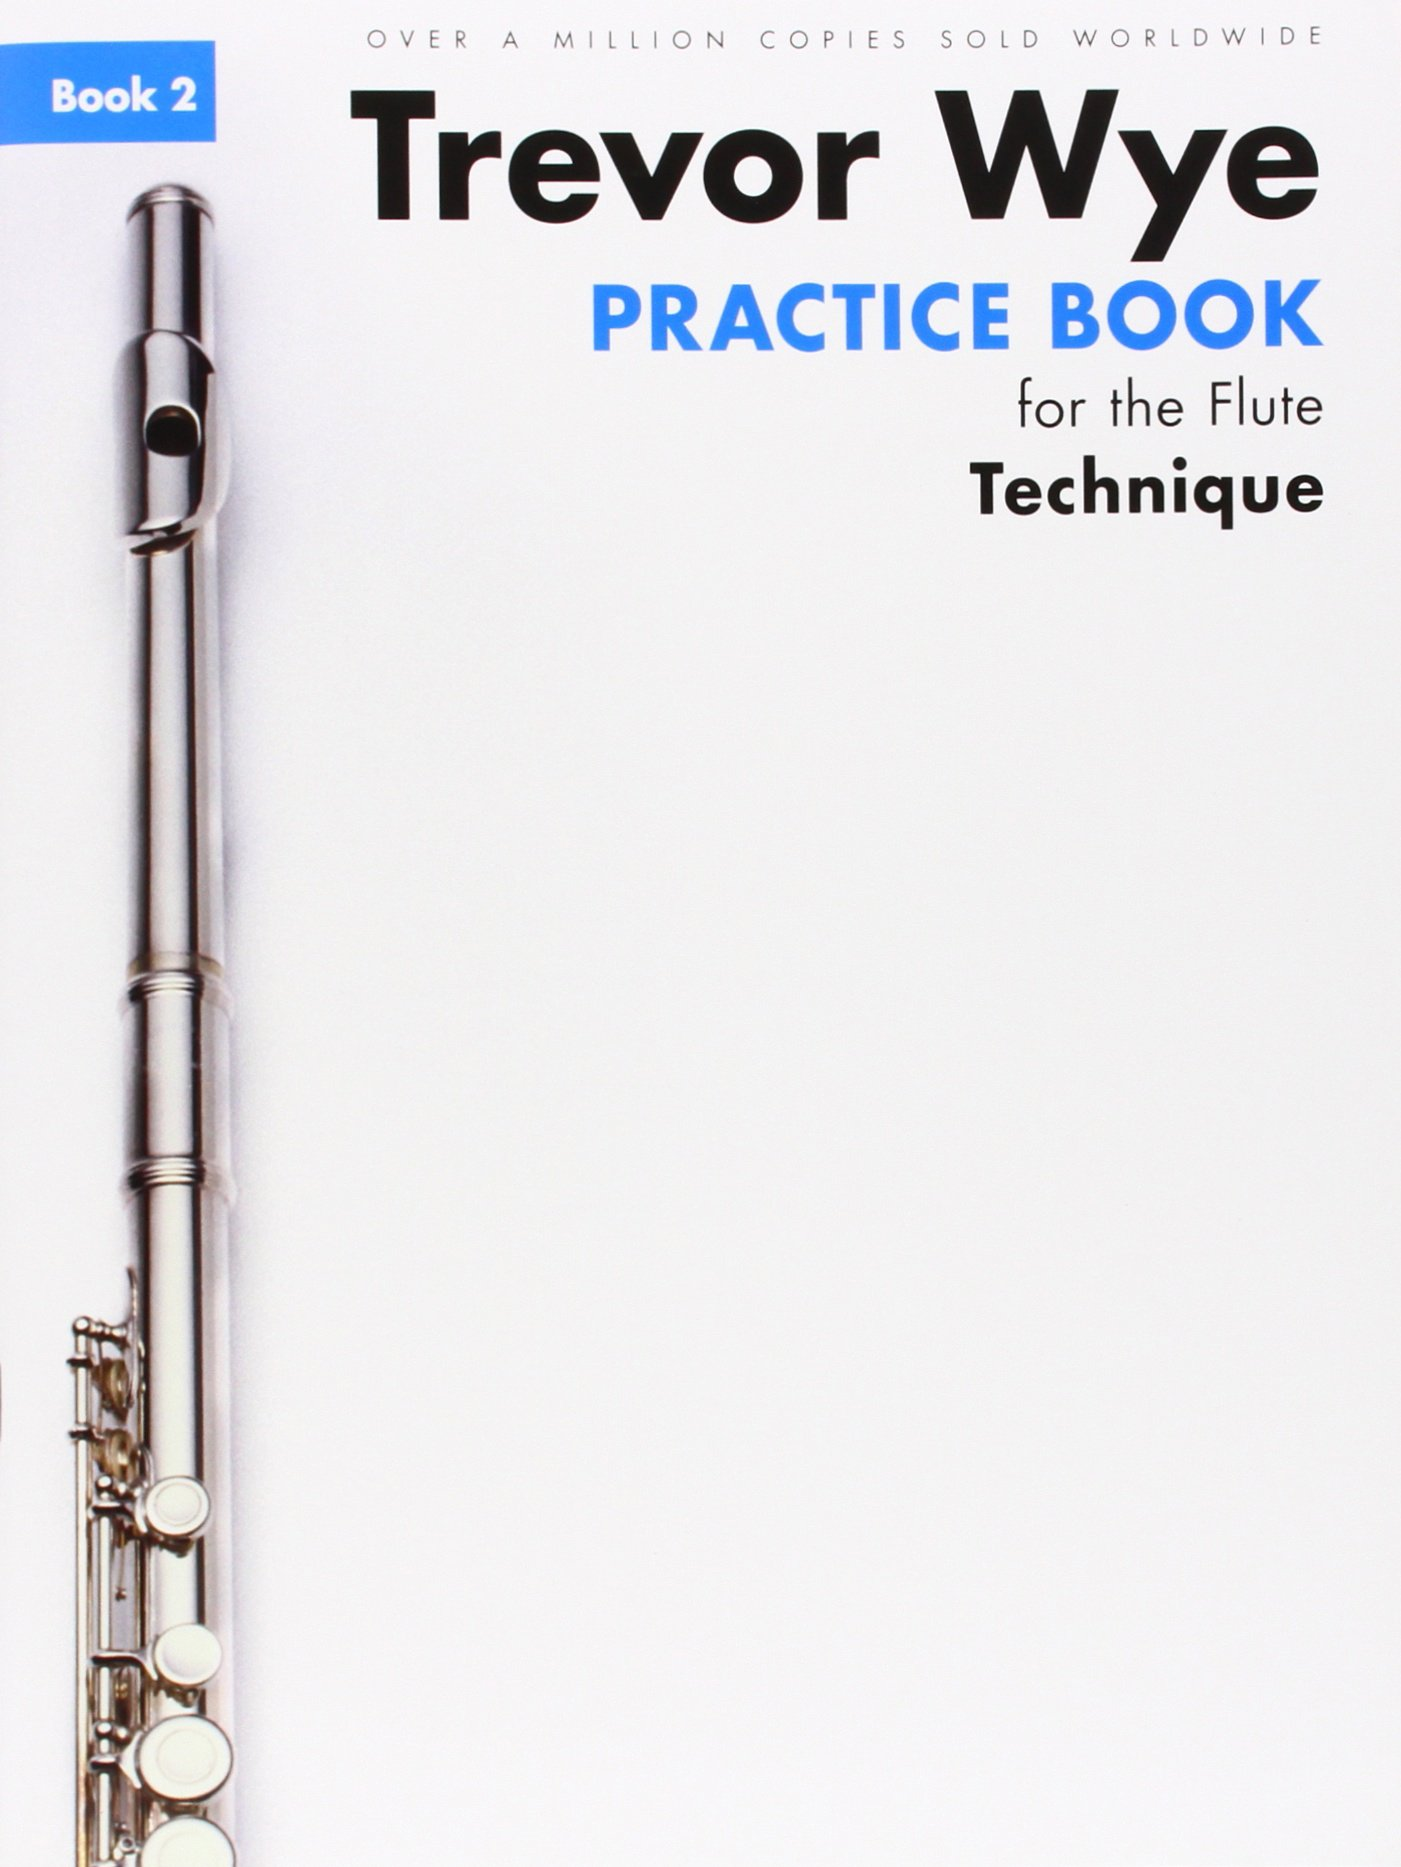 Download Trevor Wye Practice Book for the Flute: Book 2: Book 2 - Technique (Book Only) ebook